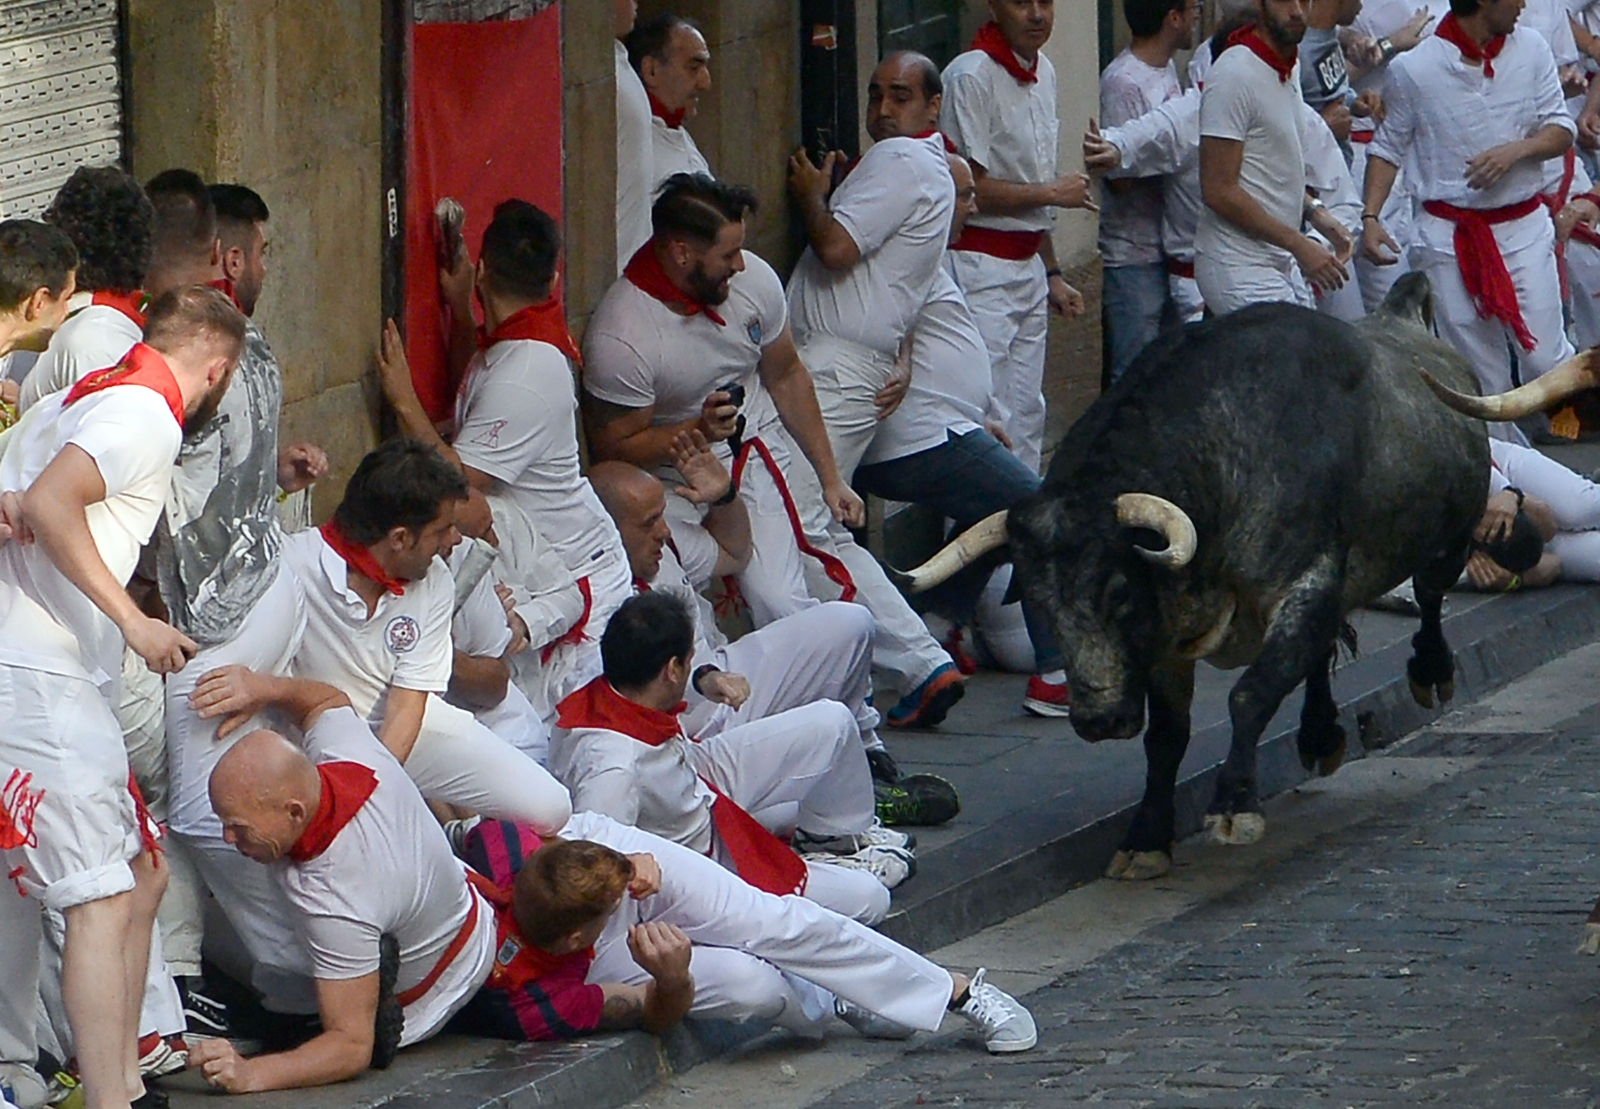 Pamplona 2017 running of the bulls